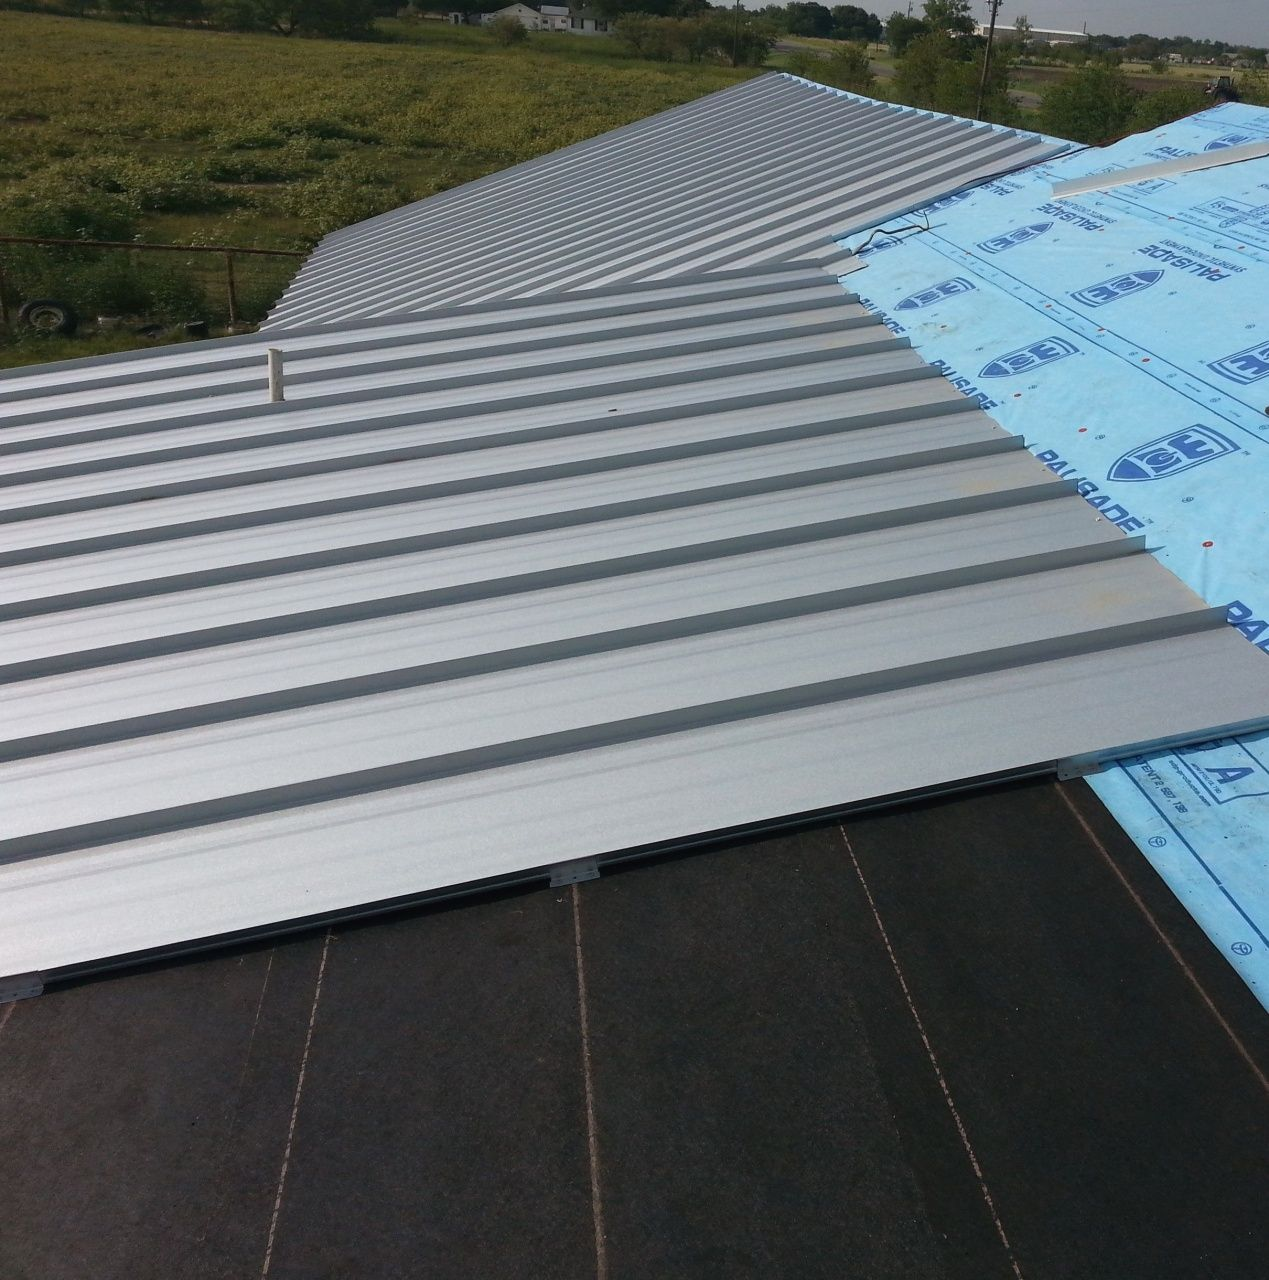 Patio Roof Panels Home Depot in 2020 Roof panels